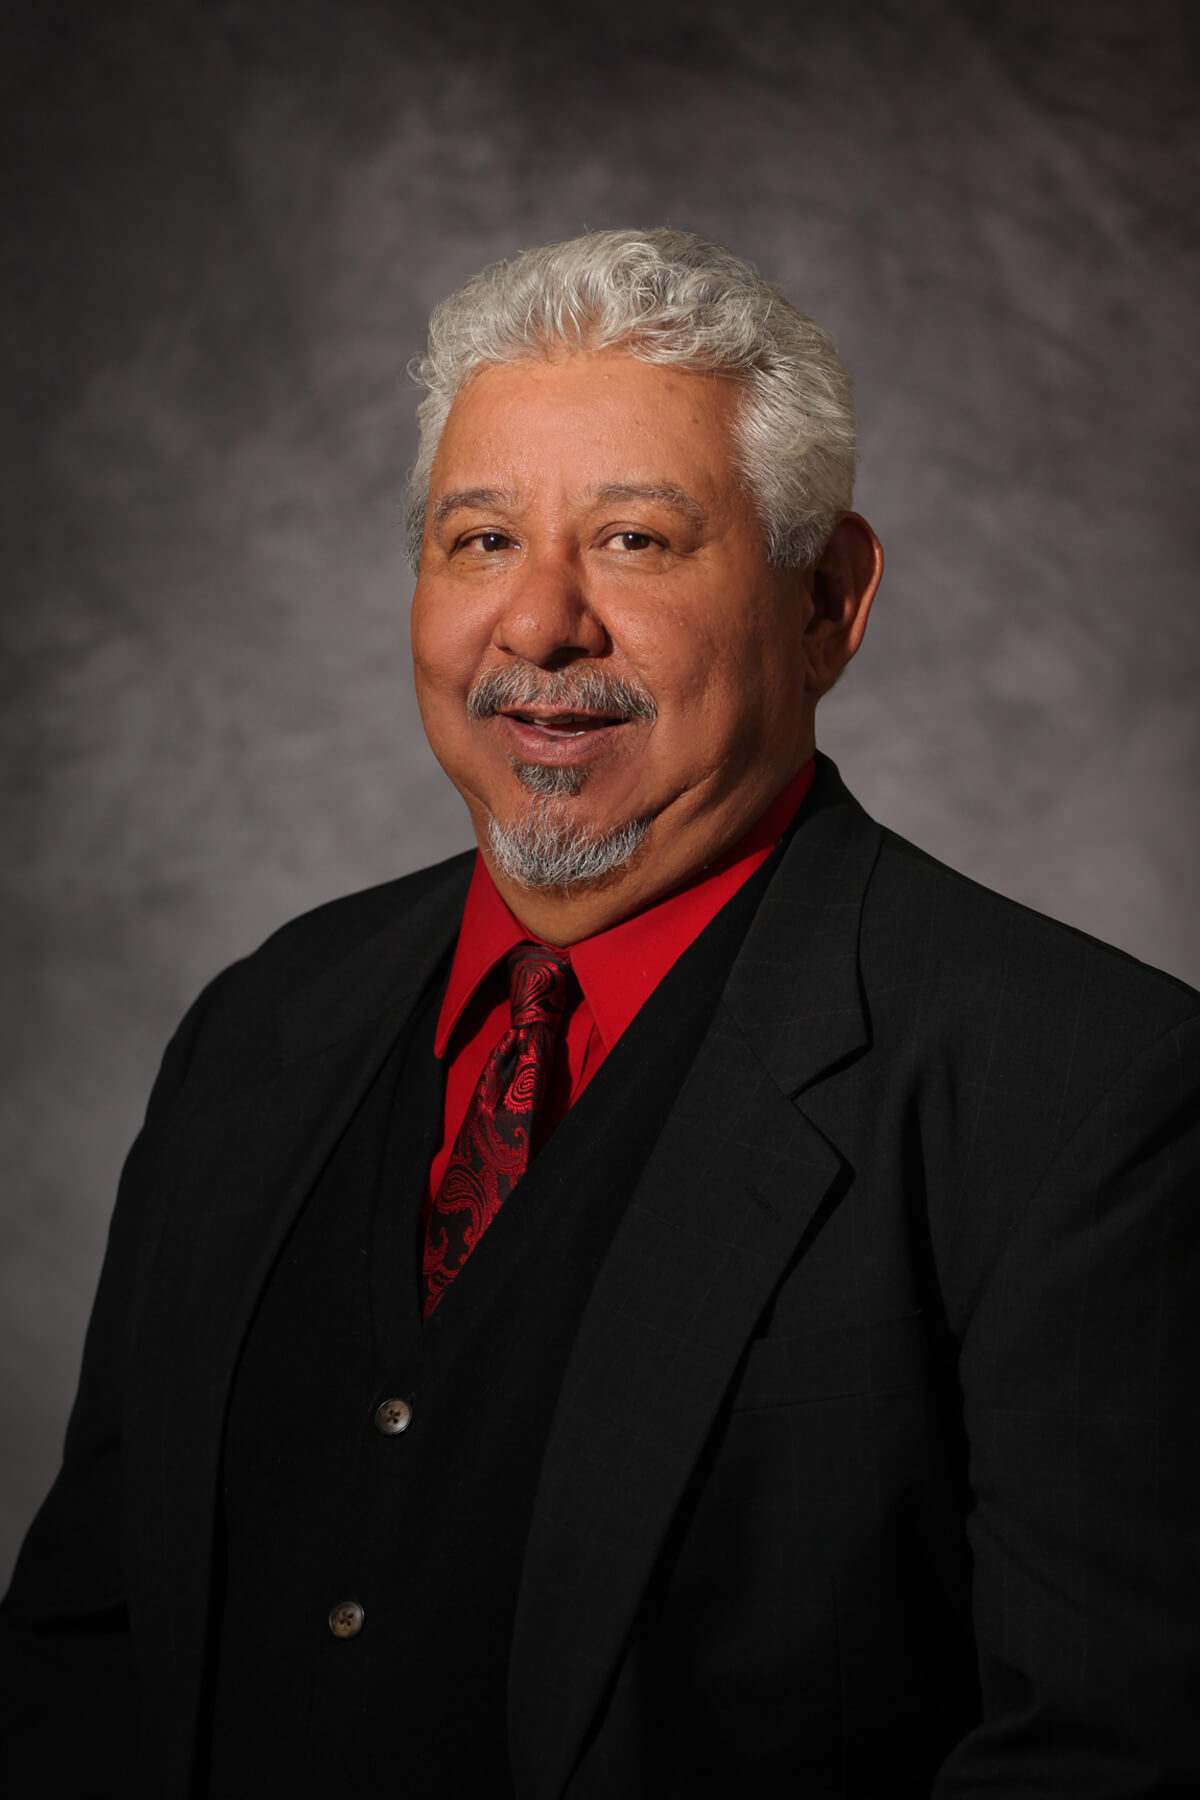 David Beltran - Security & Emergency Management Director